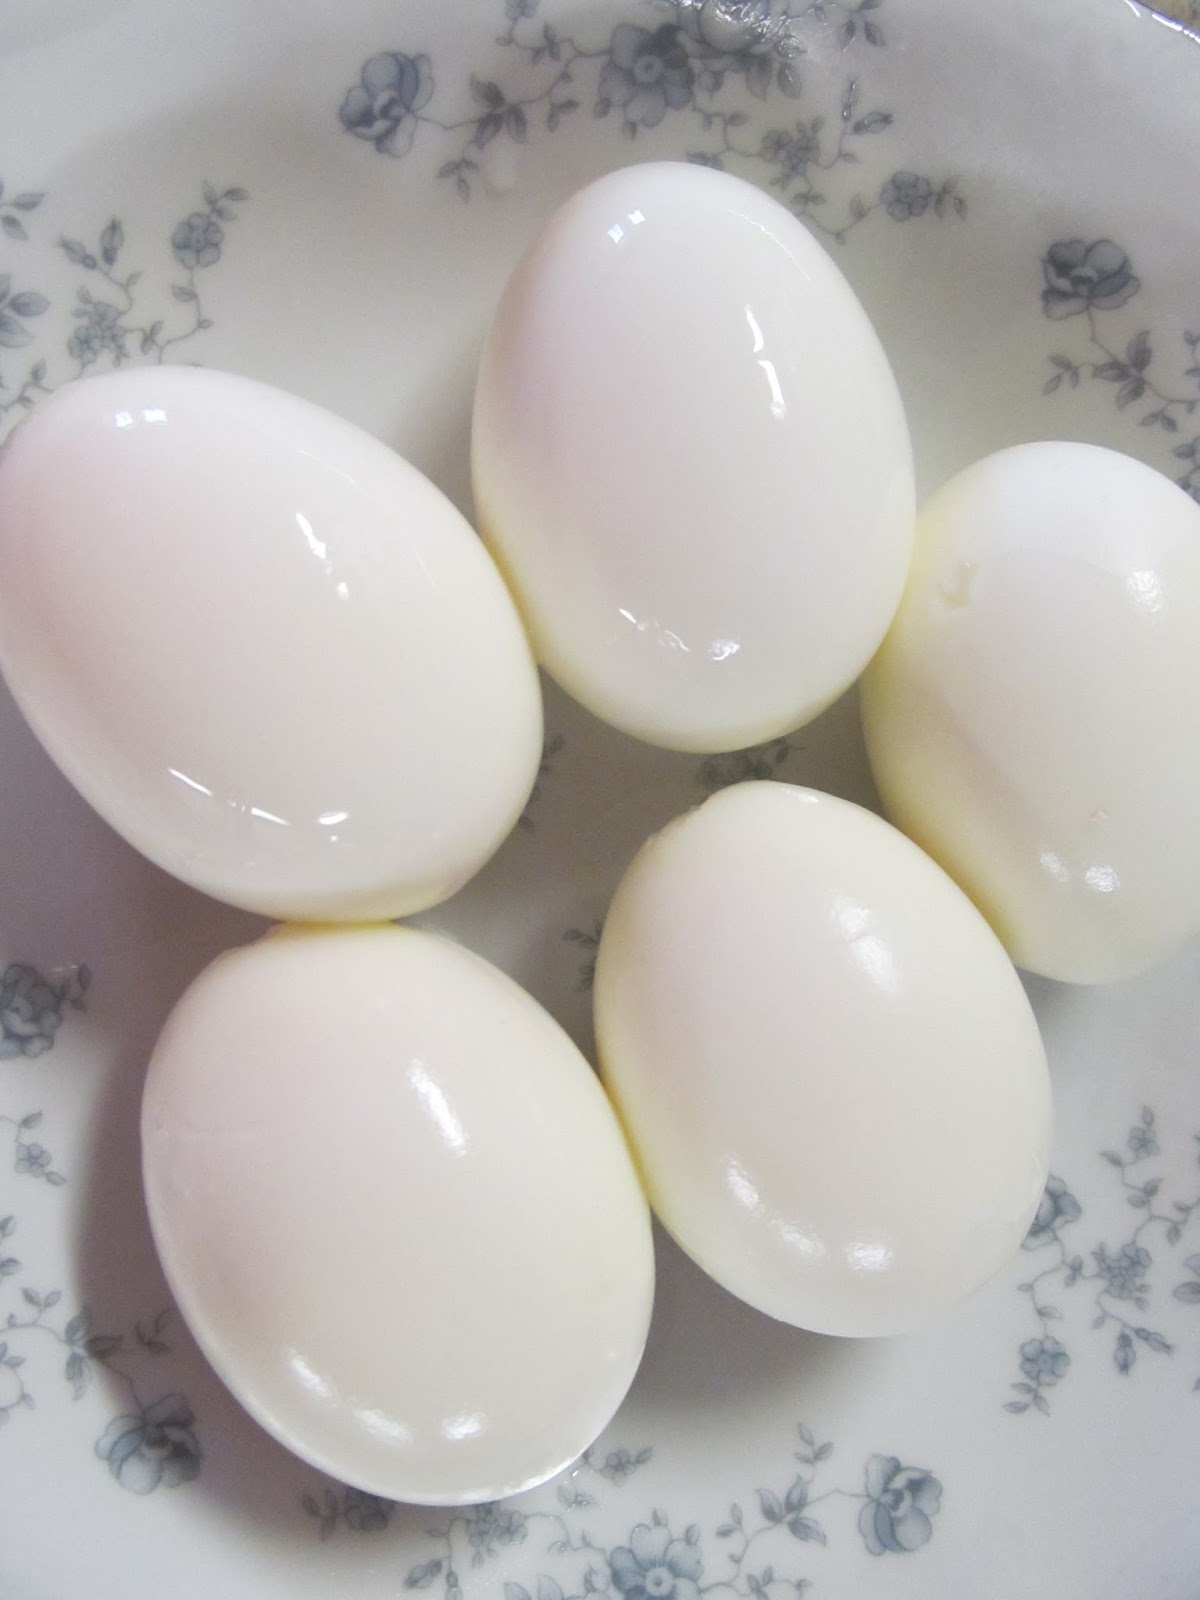 LL Farm: Hard Boiled Eggs (Mom's Tried and True Way)